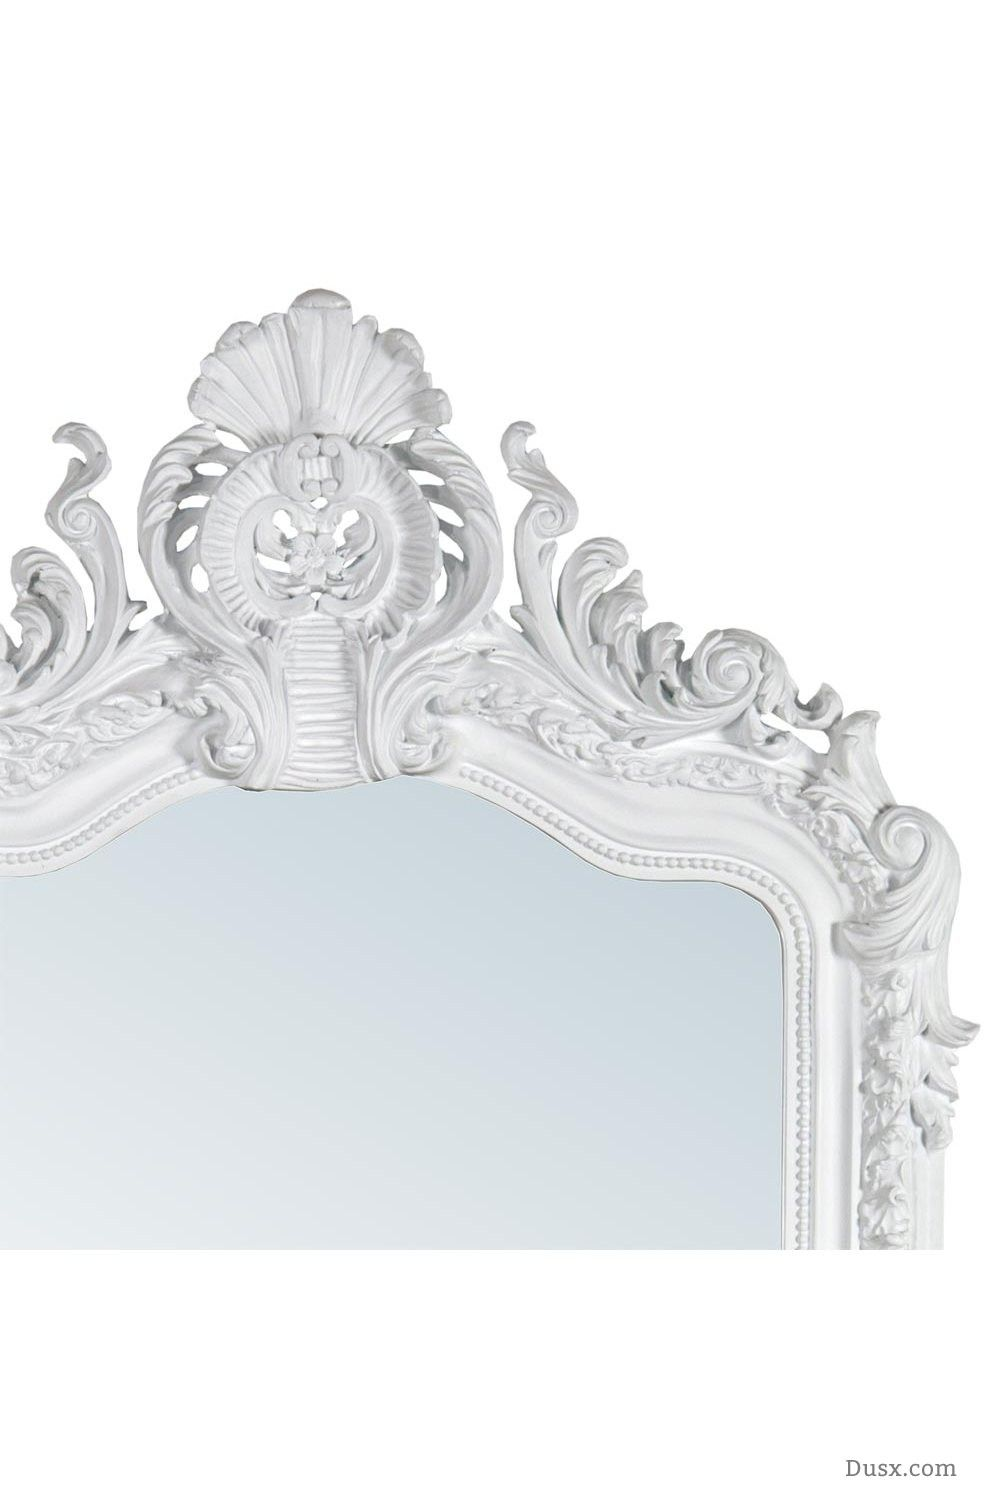 Anastasia french rococo white bevelled mirror for sale at dusx french mirrors chandeliers furniture aloadofball Images